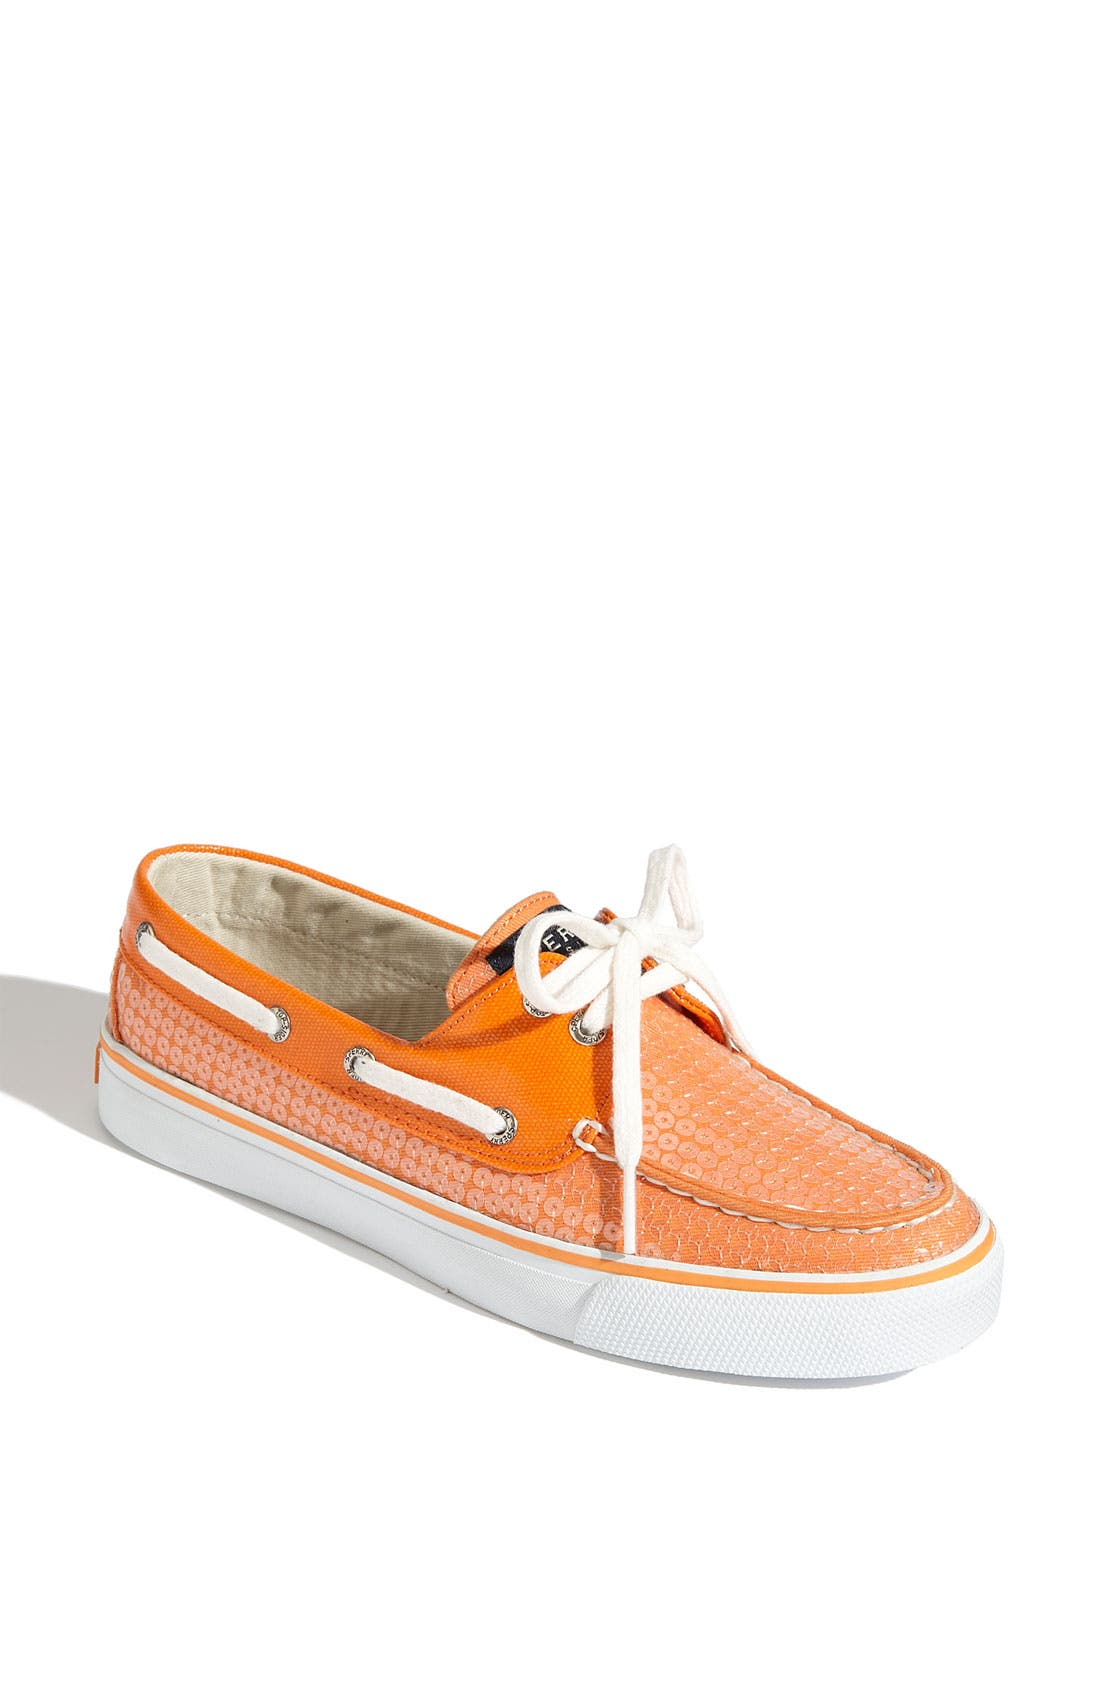 Top-Sider<sup>®</sup> 'Bahama' Sequined Boat Shoe,                             Main thumbnail 48, color,